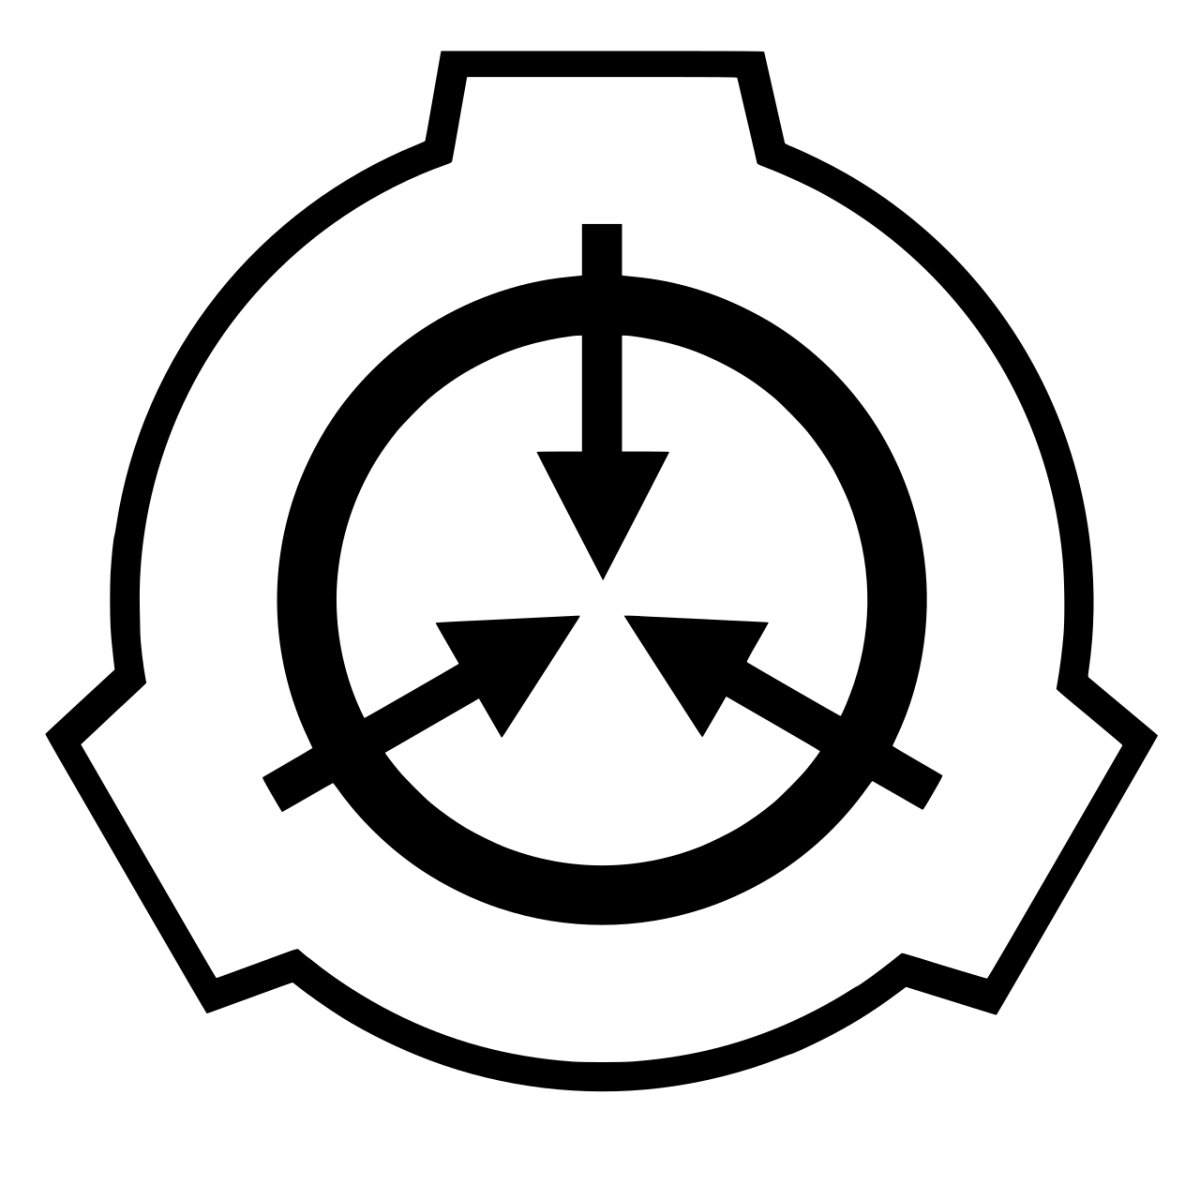 Logo of the SCP Foundation